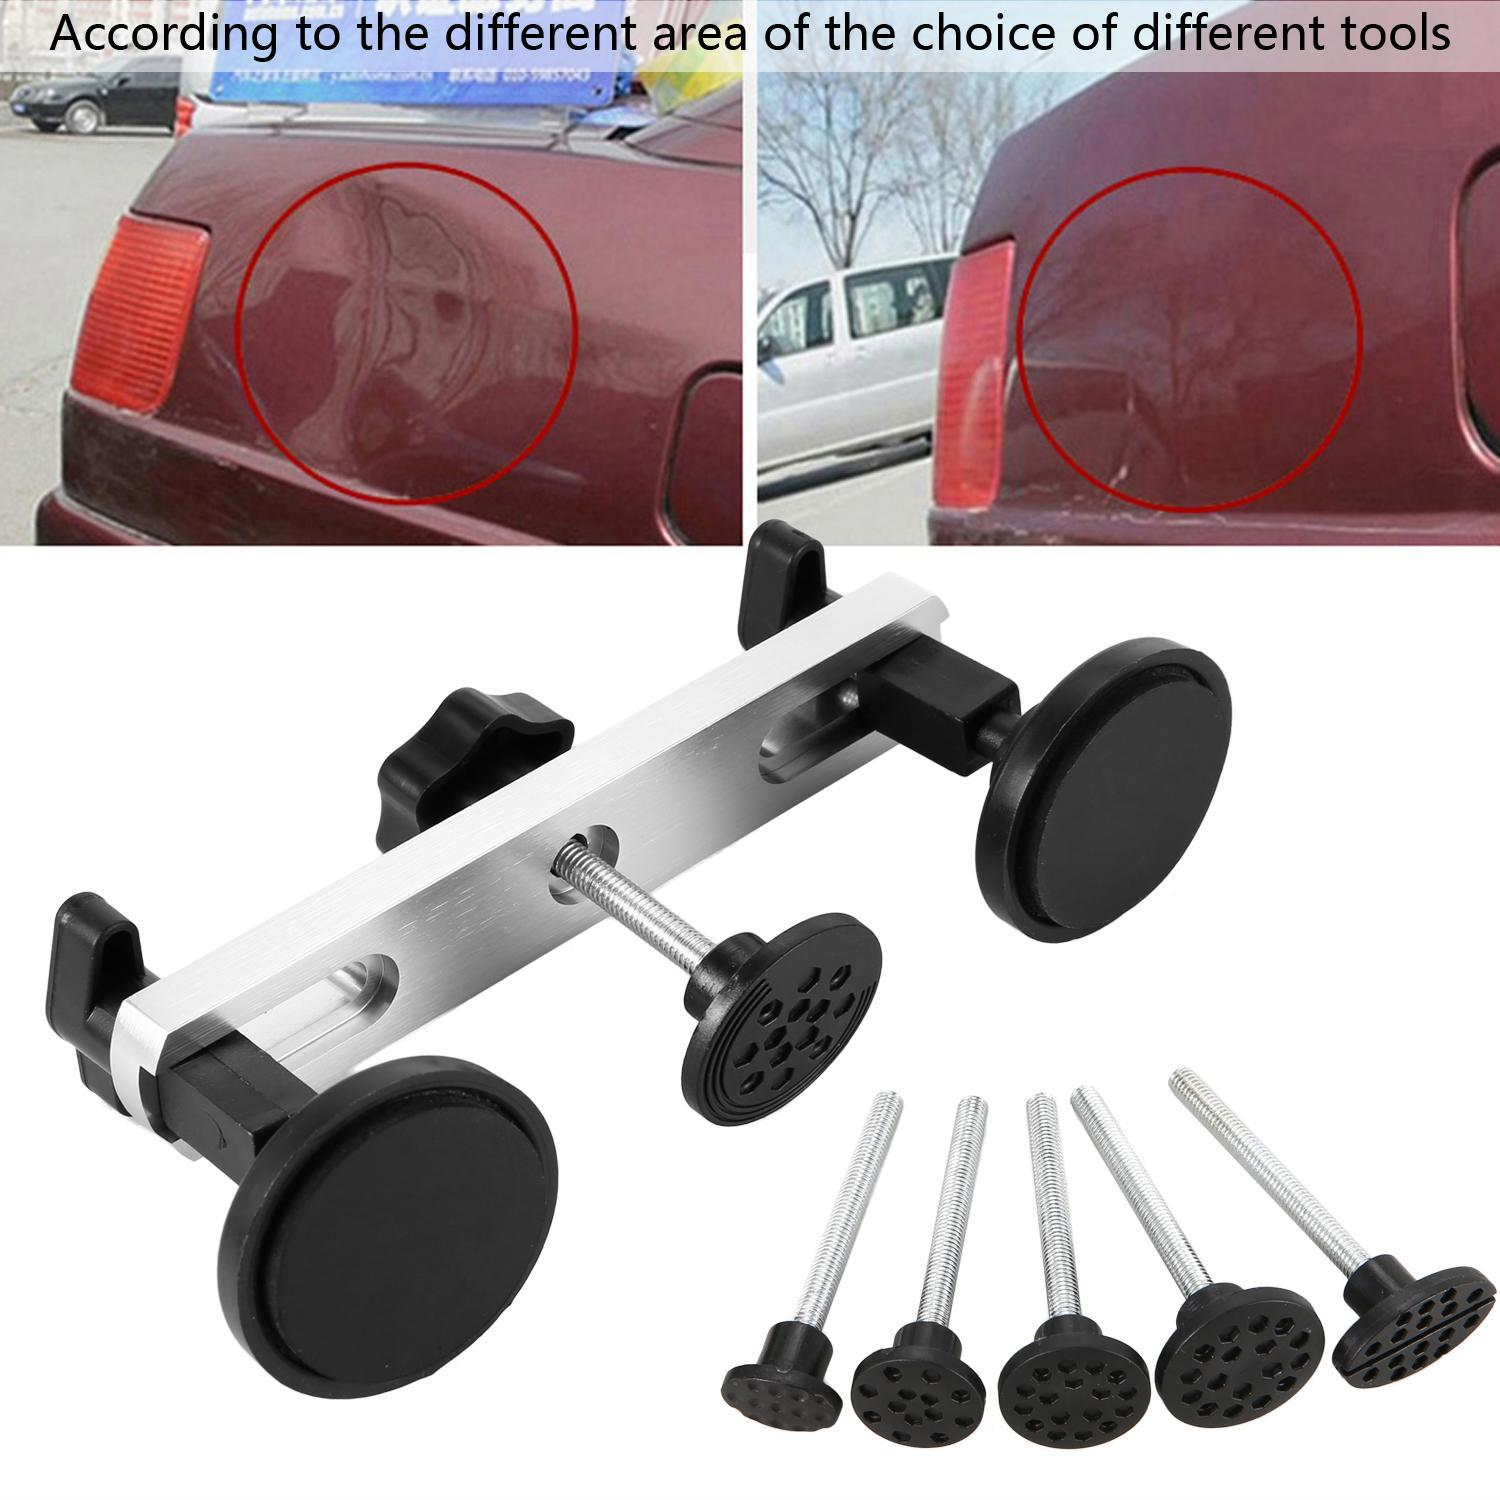 Paintless Dent Repair Dent Puller Bridge Auto Car Dent Removal kits PDR Simple Operation Tools